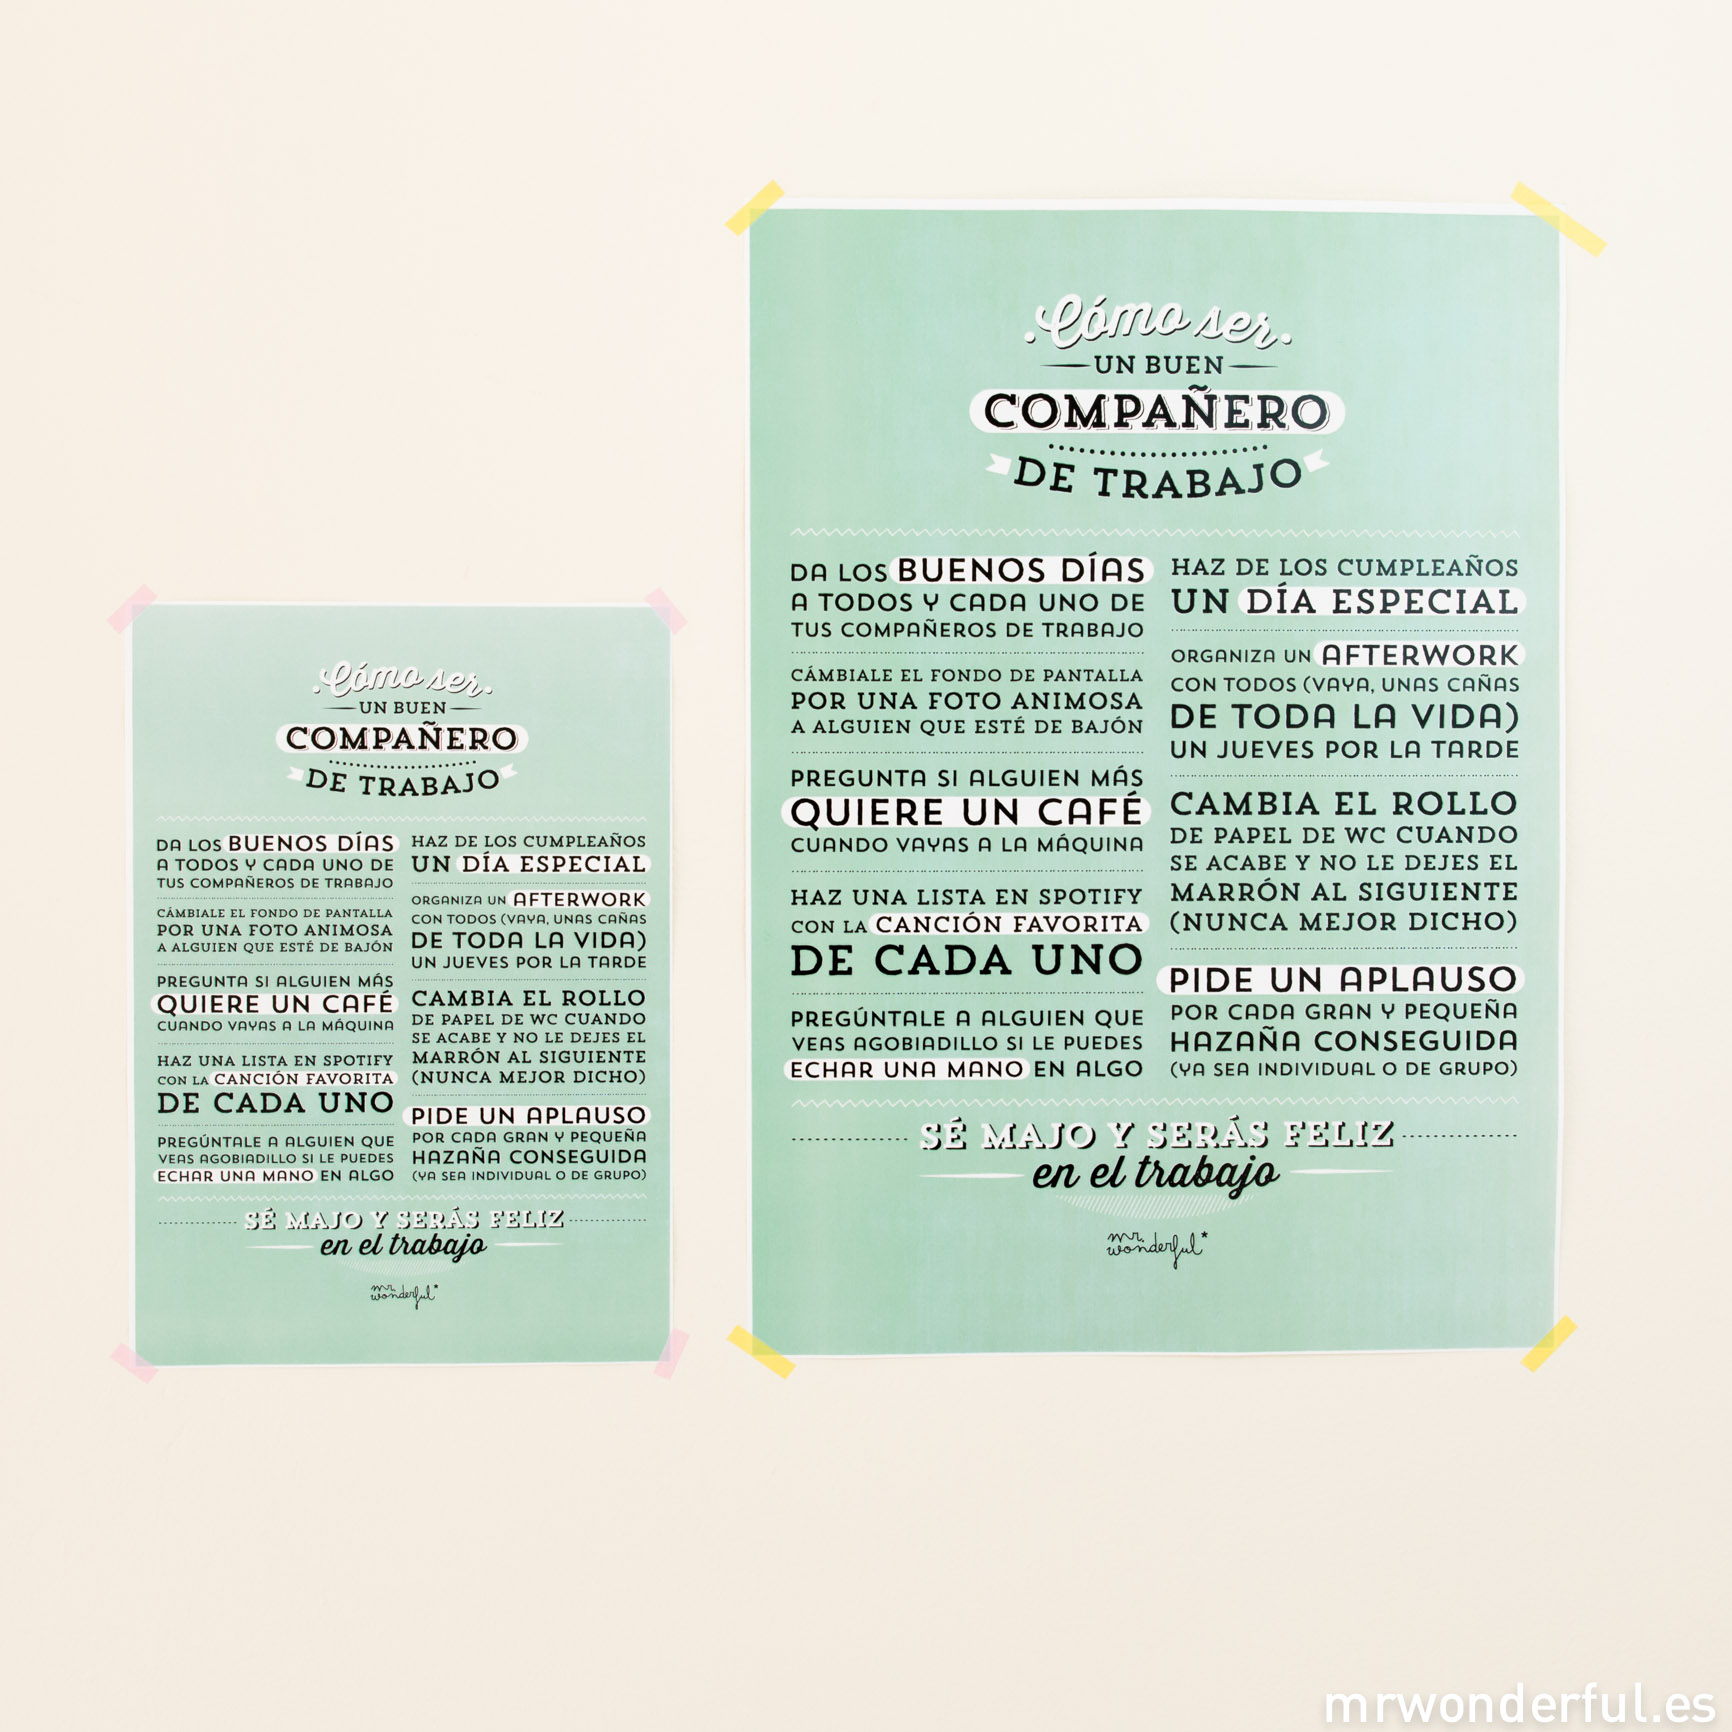 mrwonderful_descargables_decalogo-compi_2014-12